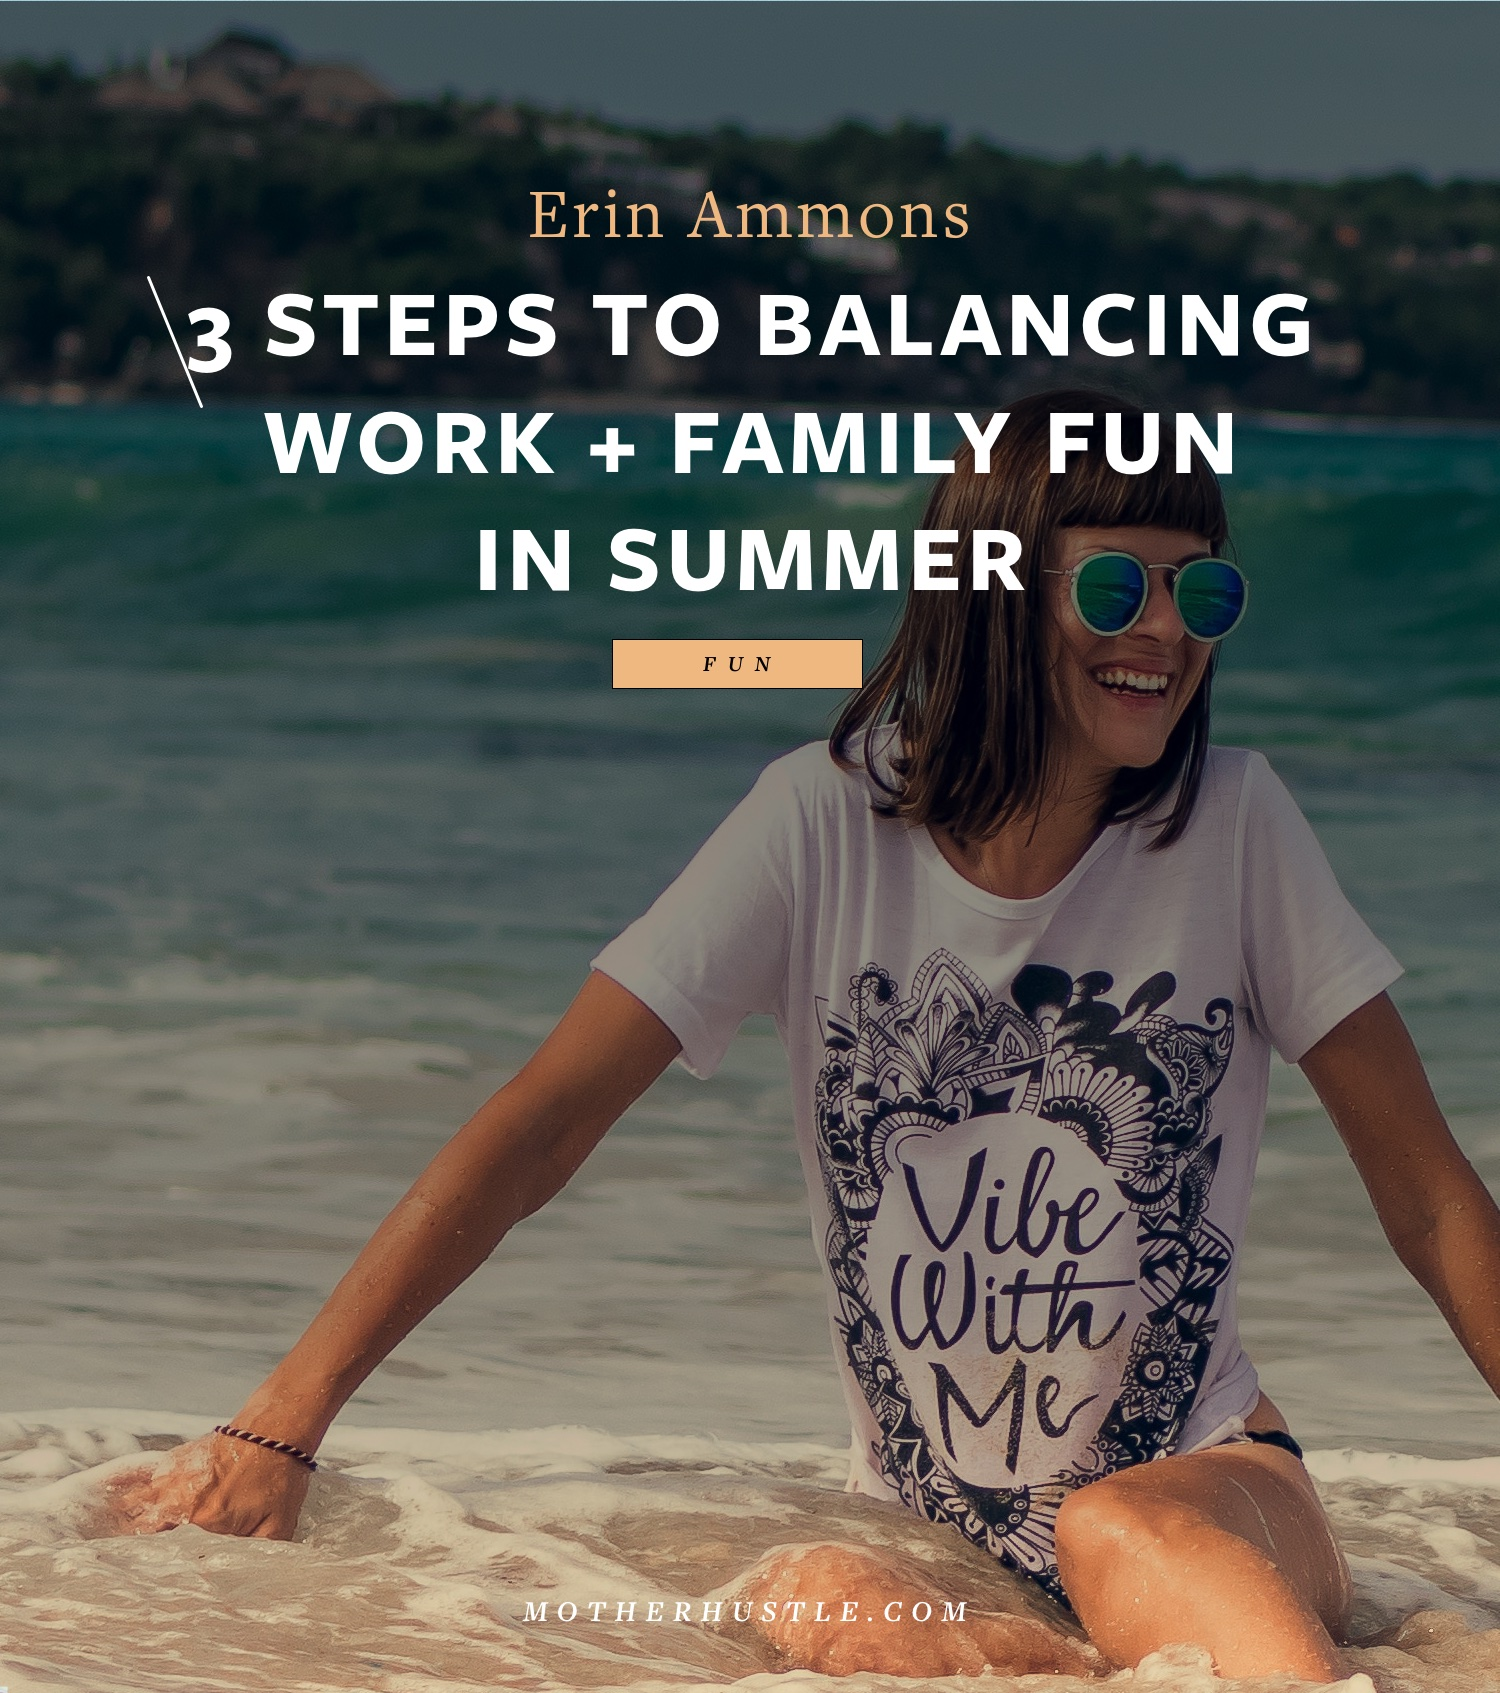 3 Steps to Balancing Work + Family Fun in Summer - by Erin Ammons for MotherHustle